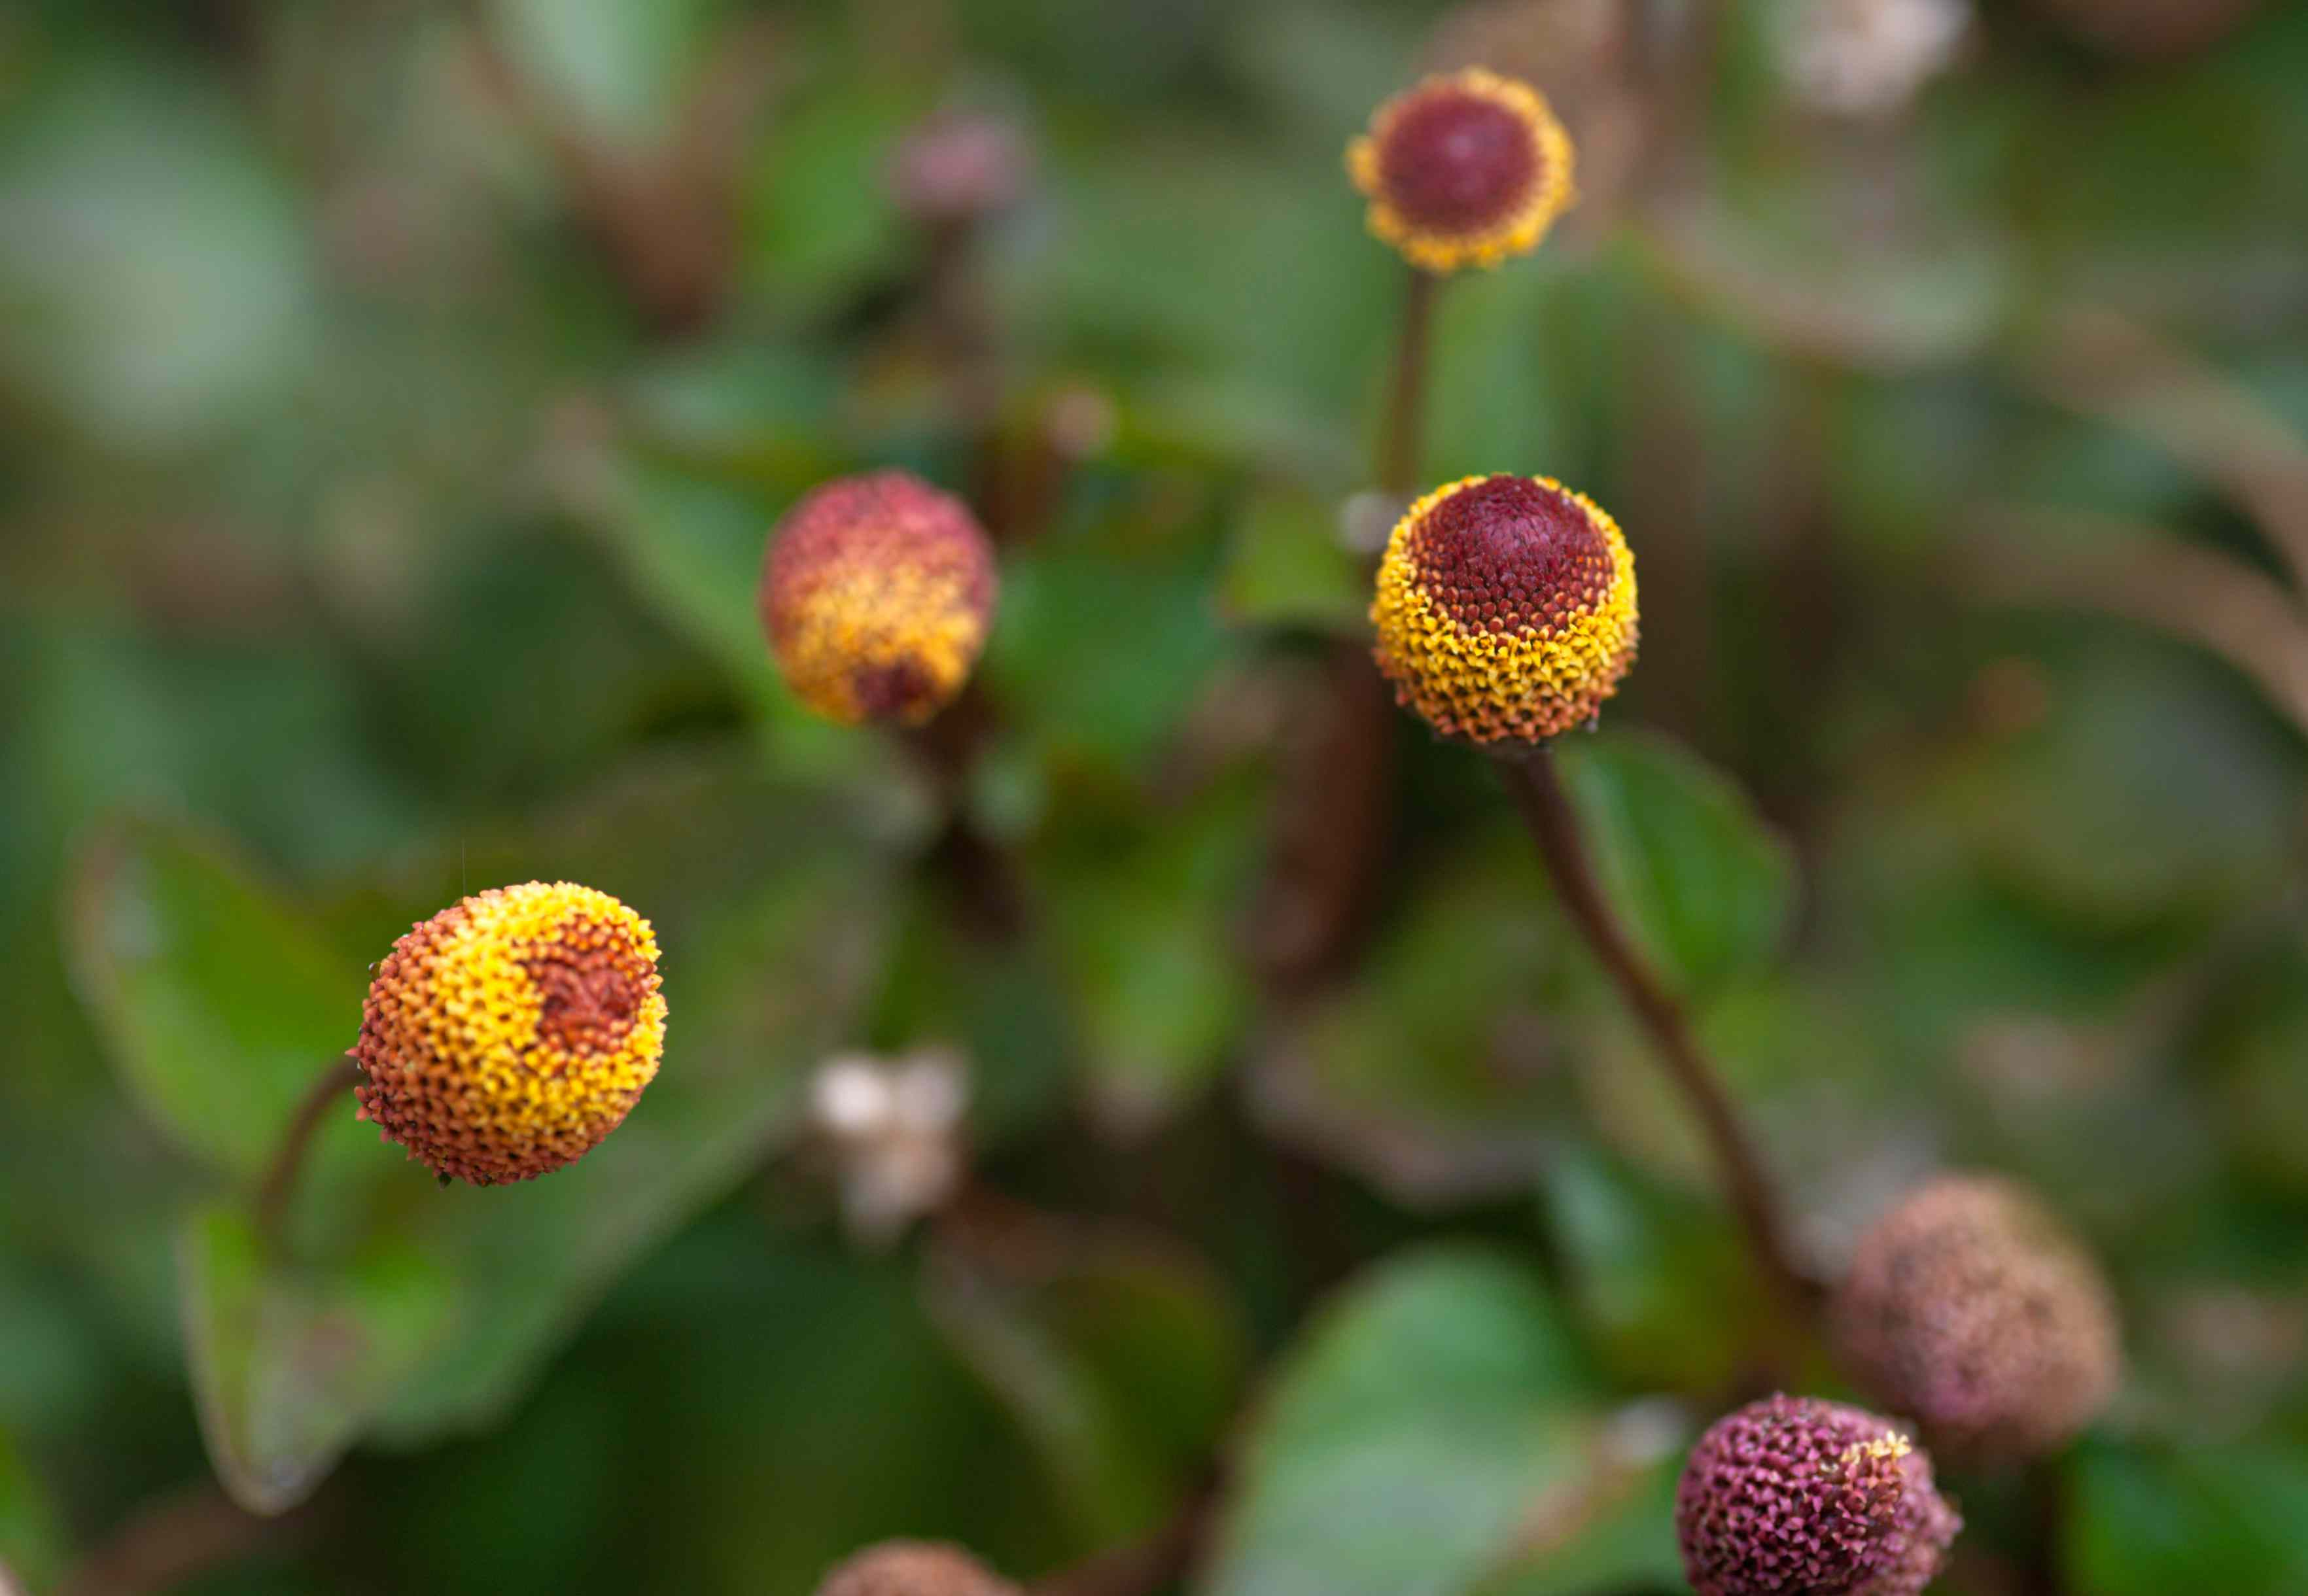 Eyeball plant with yellow and burgundy disk florets on thin stem closeup